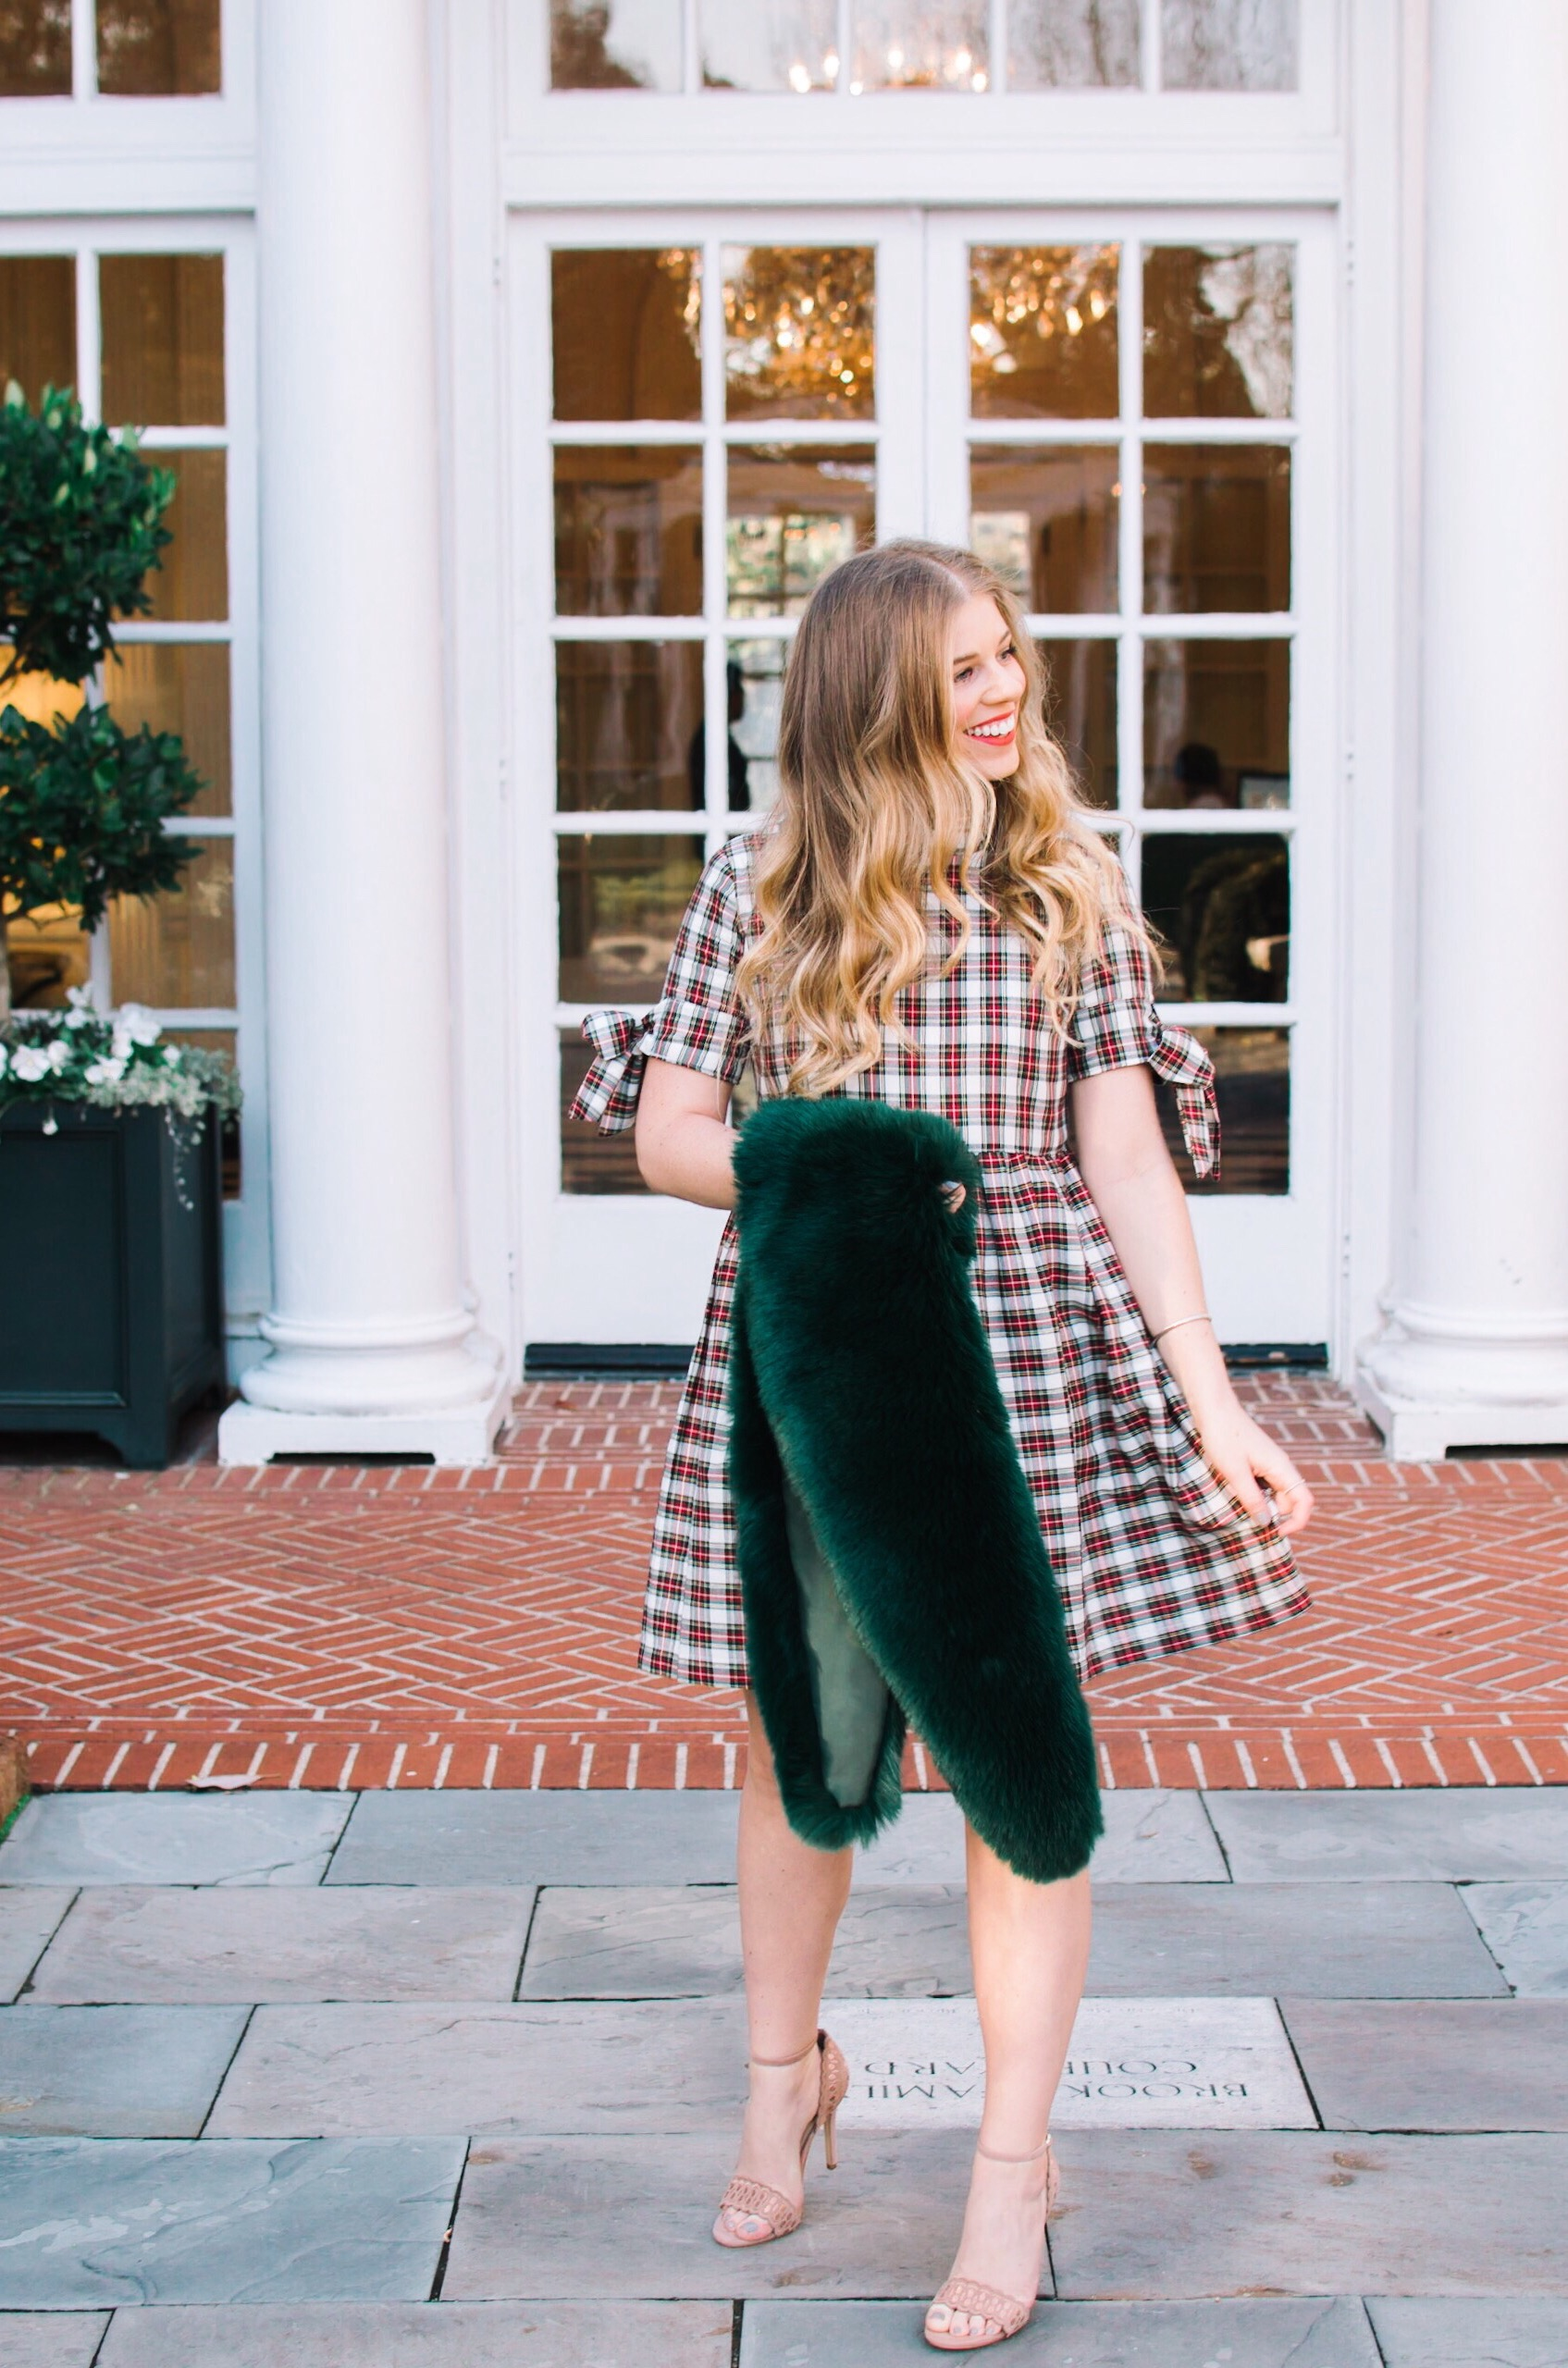 Louella Reese 2017 Year Review | Louella Reese Life & Style Blog